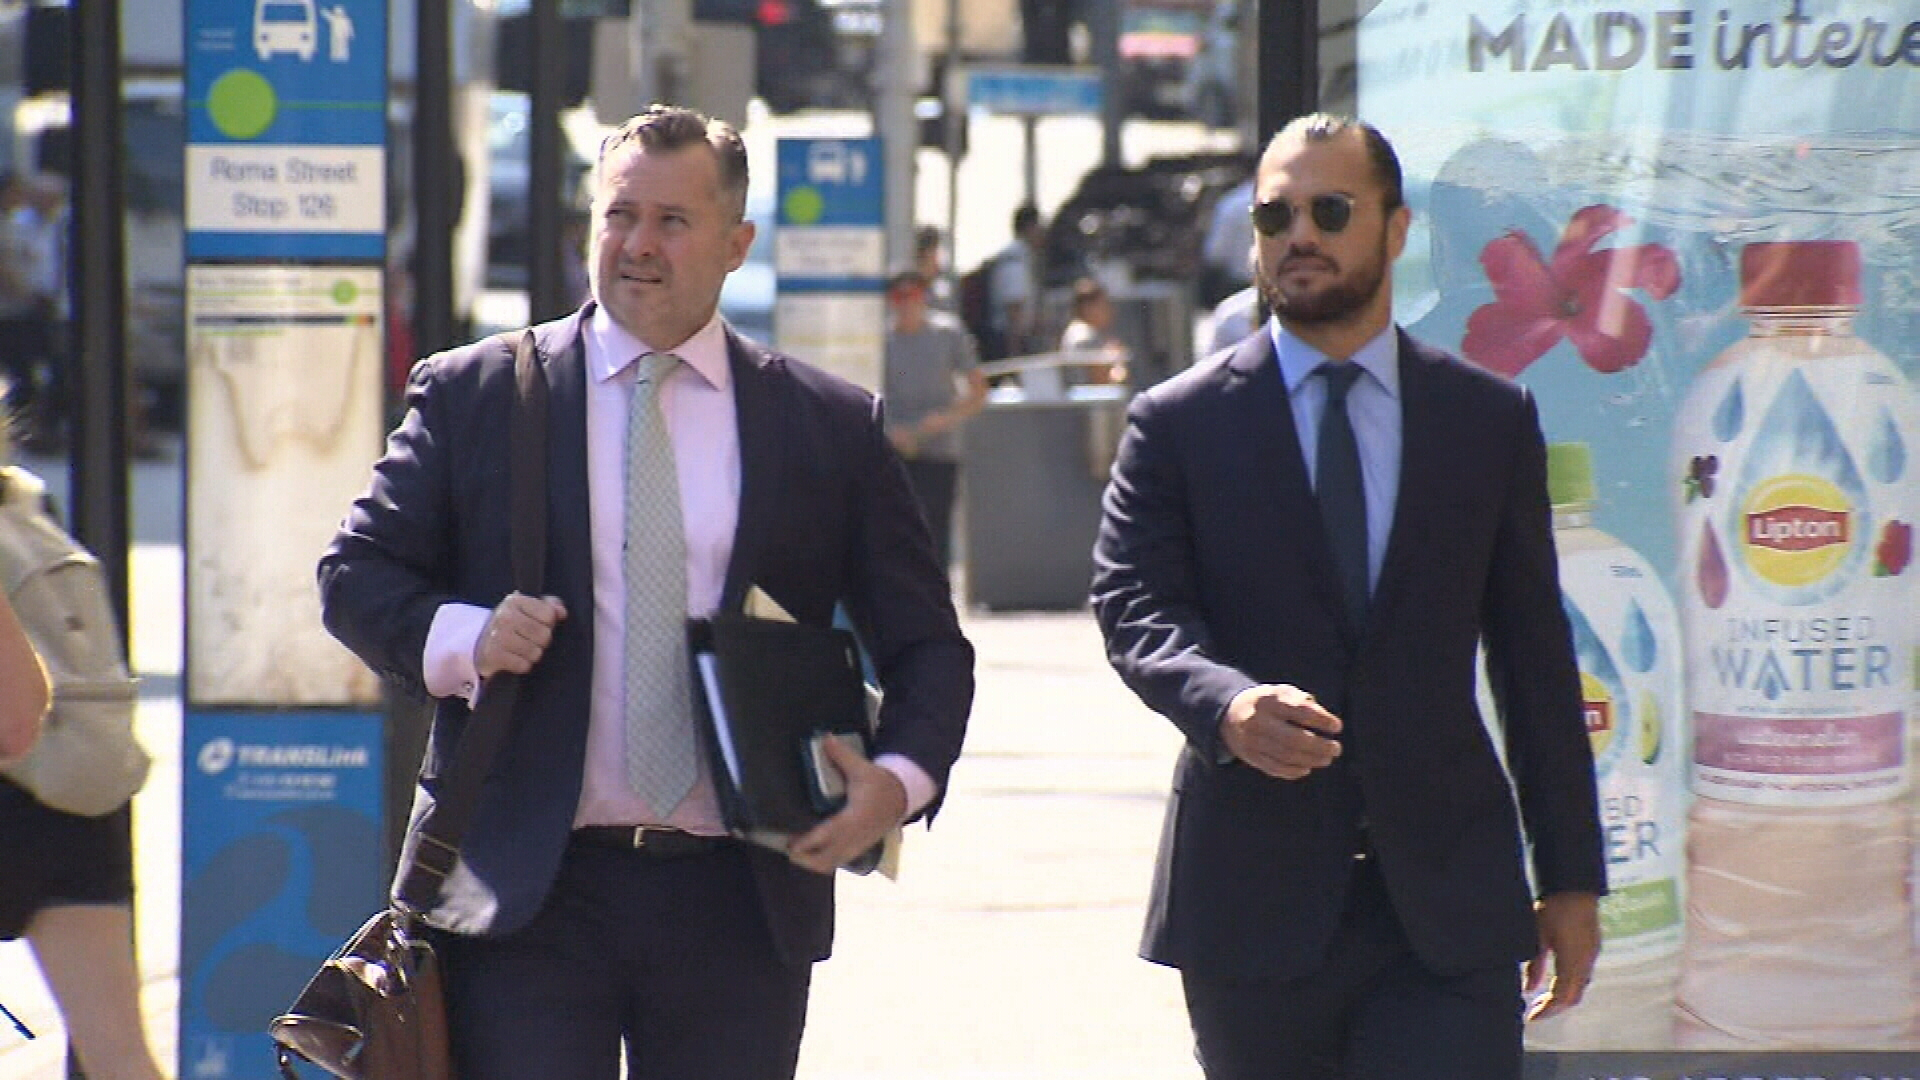 High-profile lawyer facing fraud charges